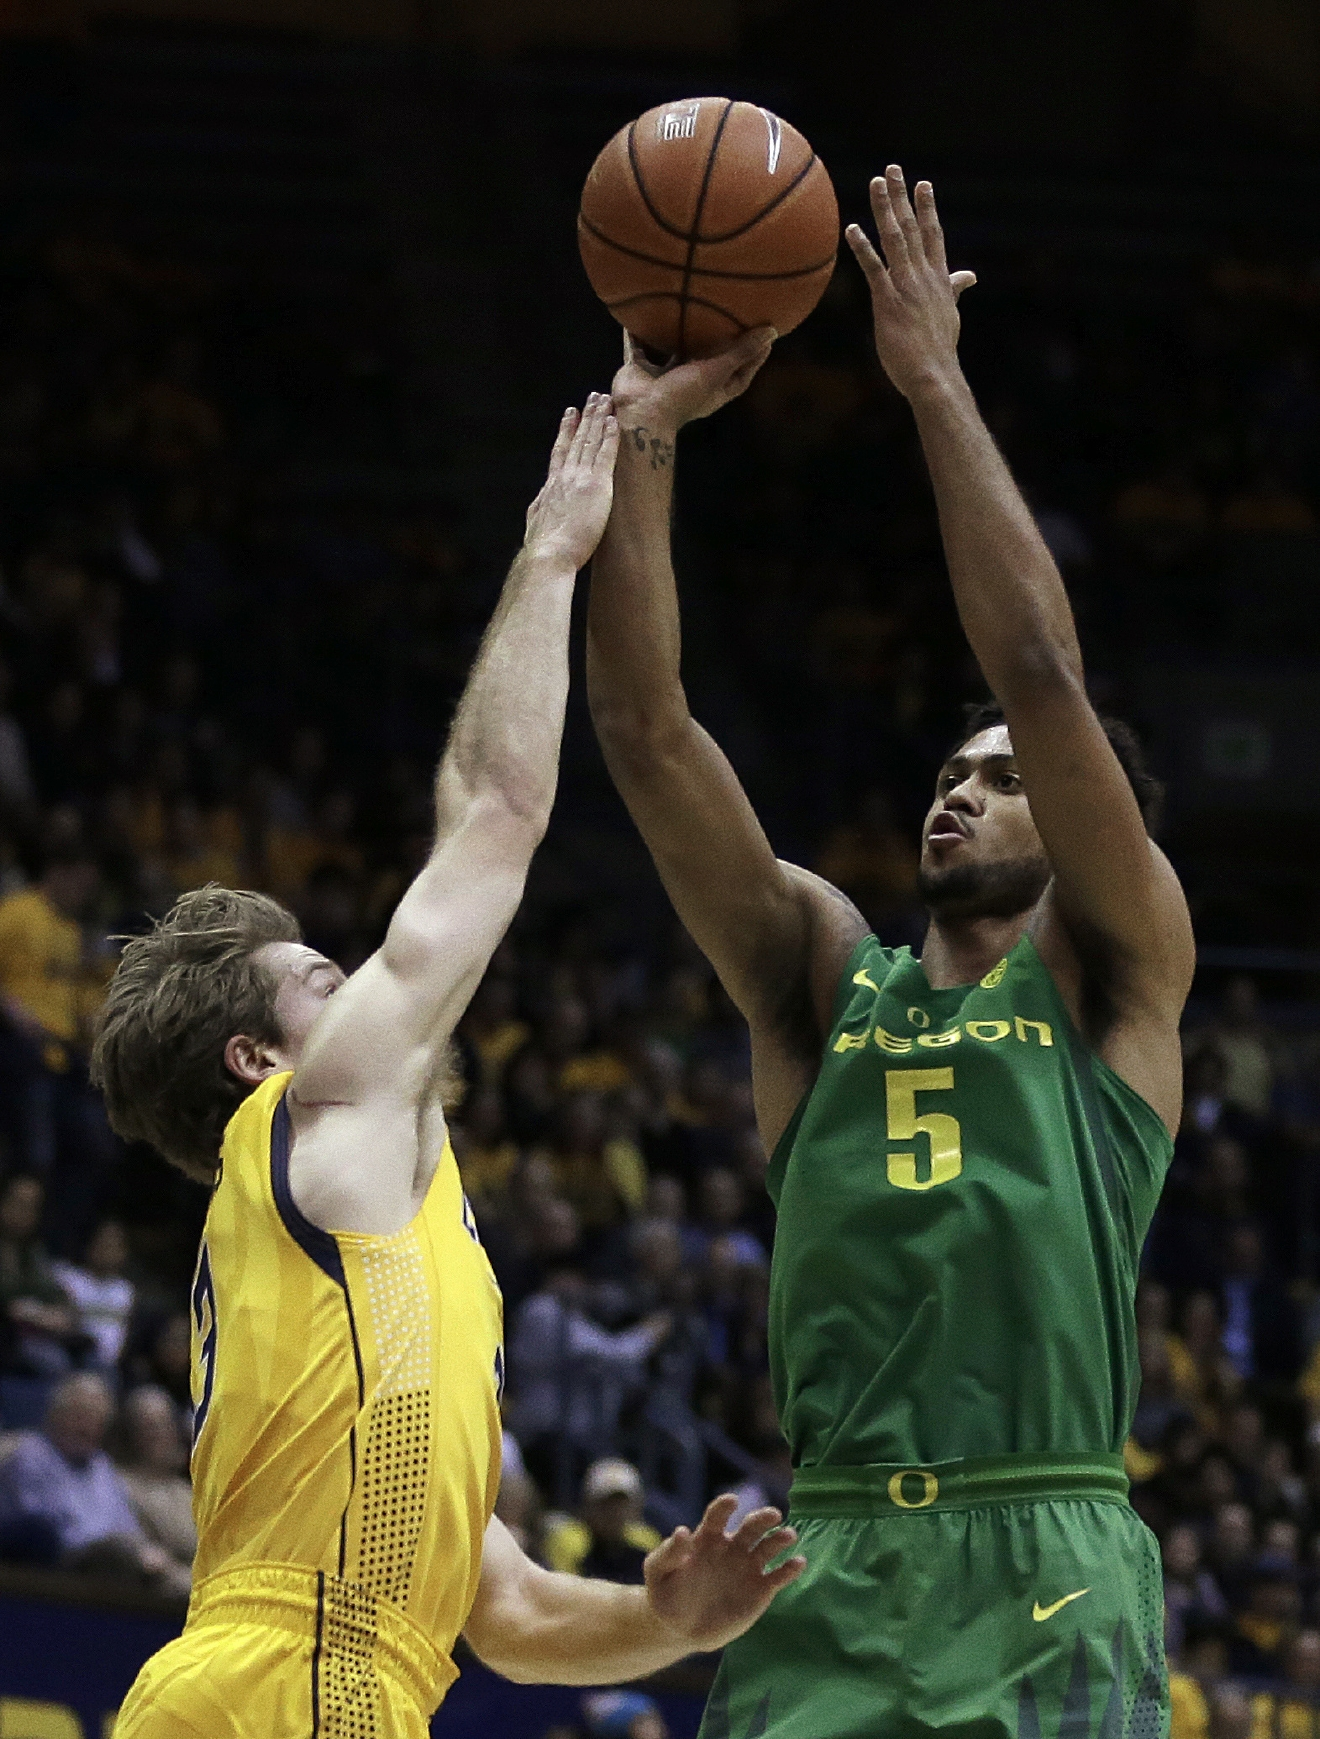 Oregon's Tyler Dorsey, right, shoots over California's Grant Mullins in the first half of an NCAA college basketball game, Wednesday, Feb. 22, 2017, in Berkeley, Calif. (AP Photo/Ben Margot)